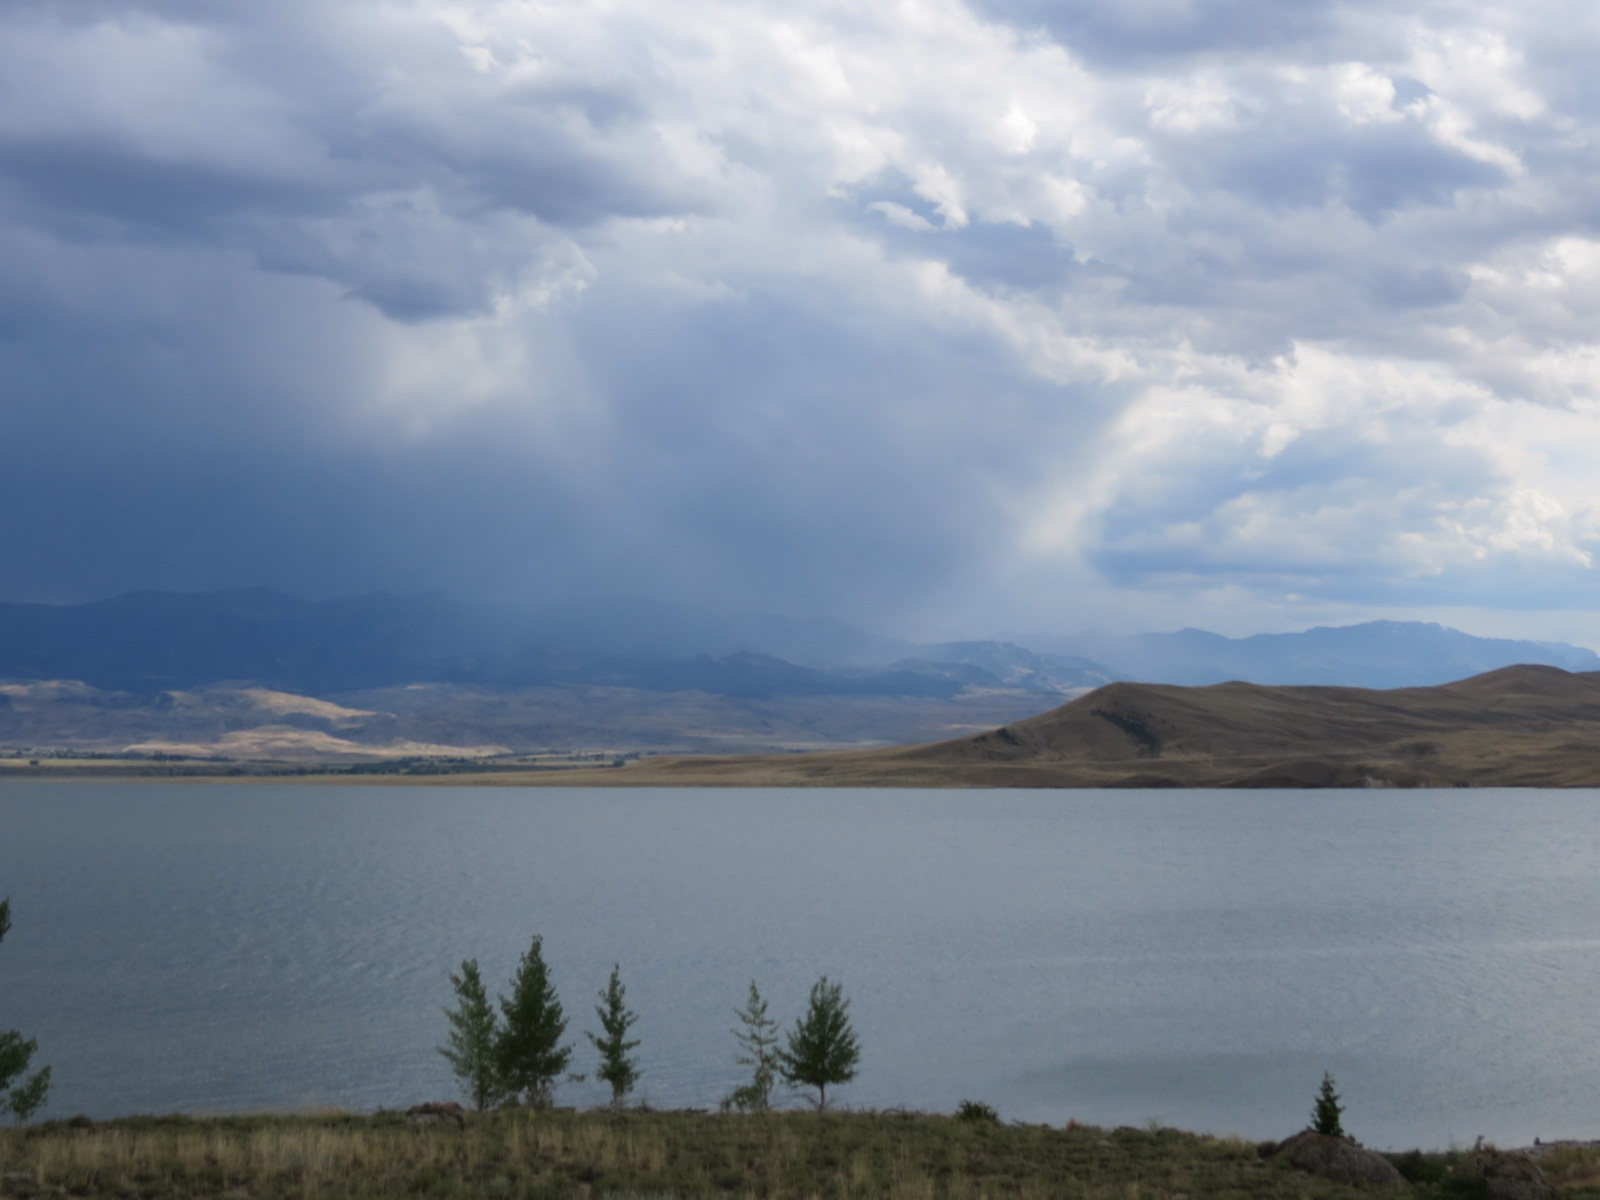 Storm coming across Buffalo Bill Dam on the Shoshone River